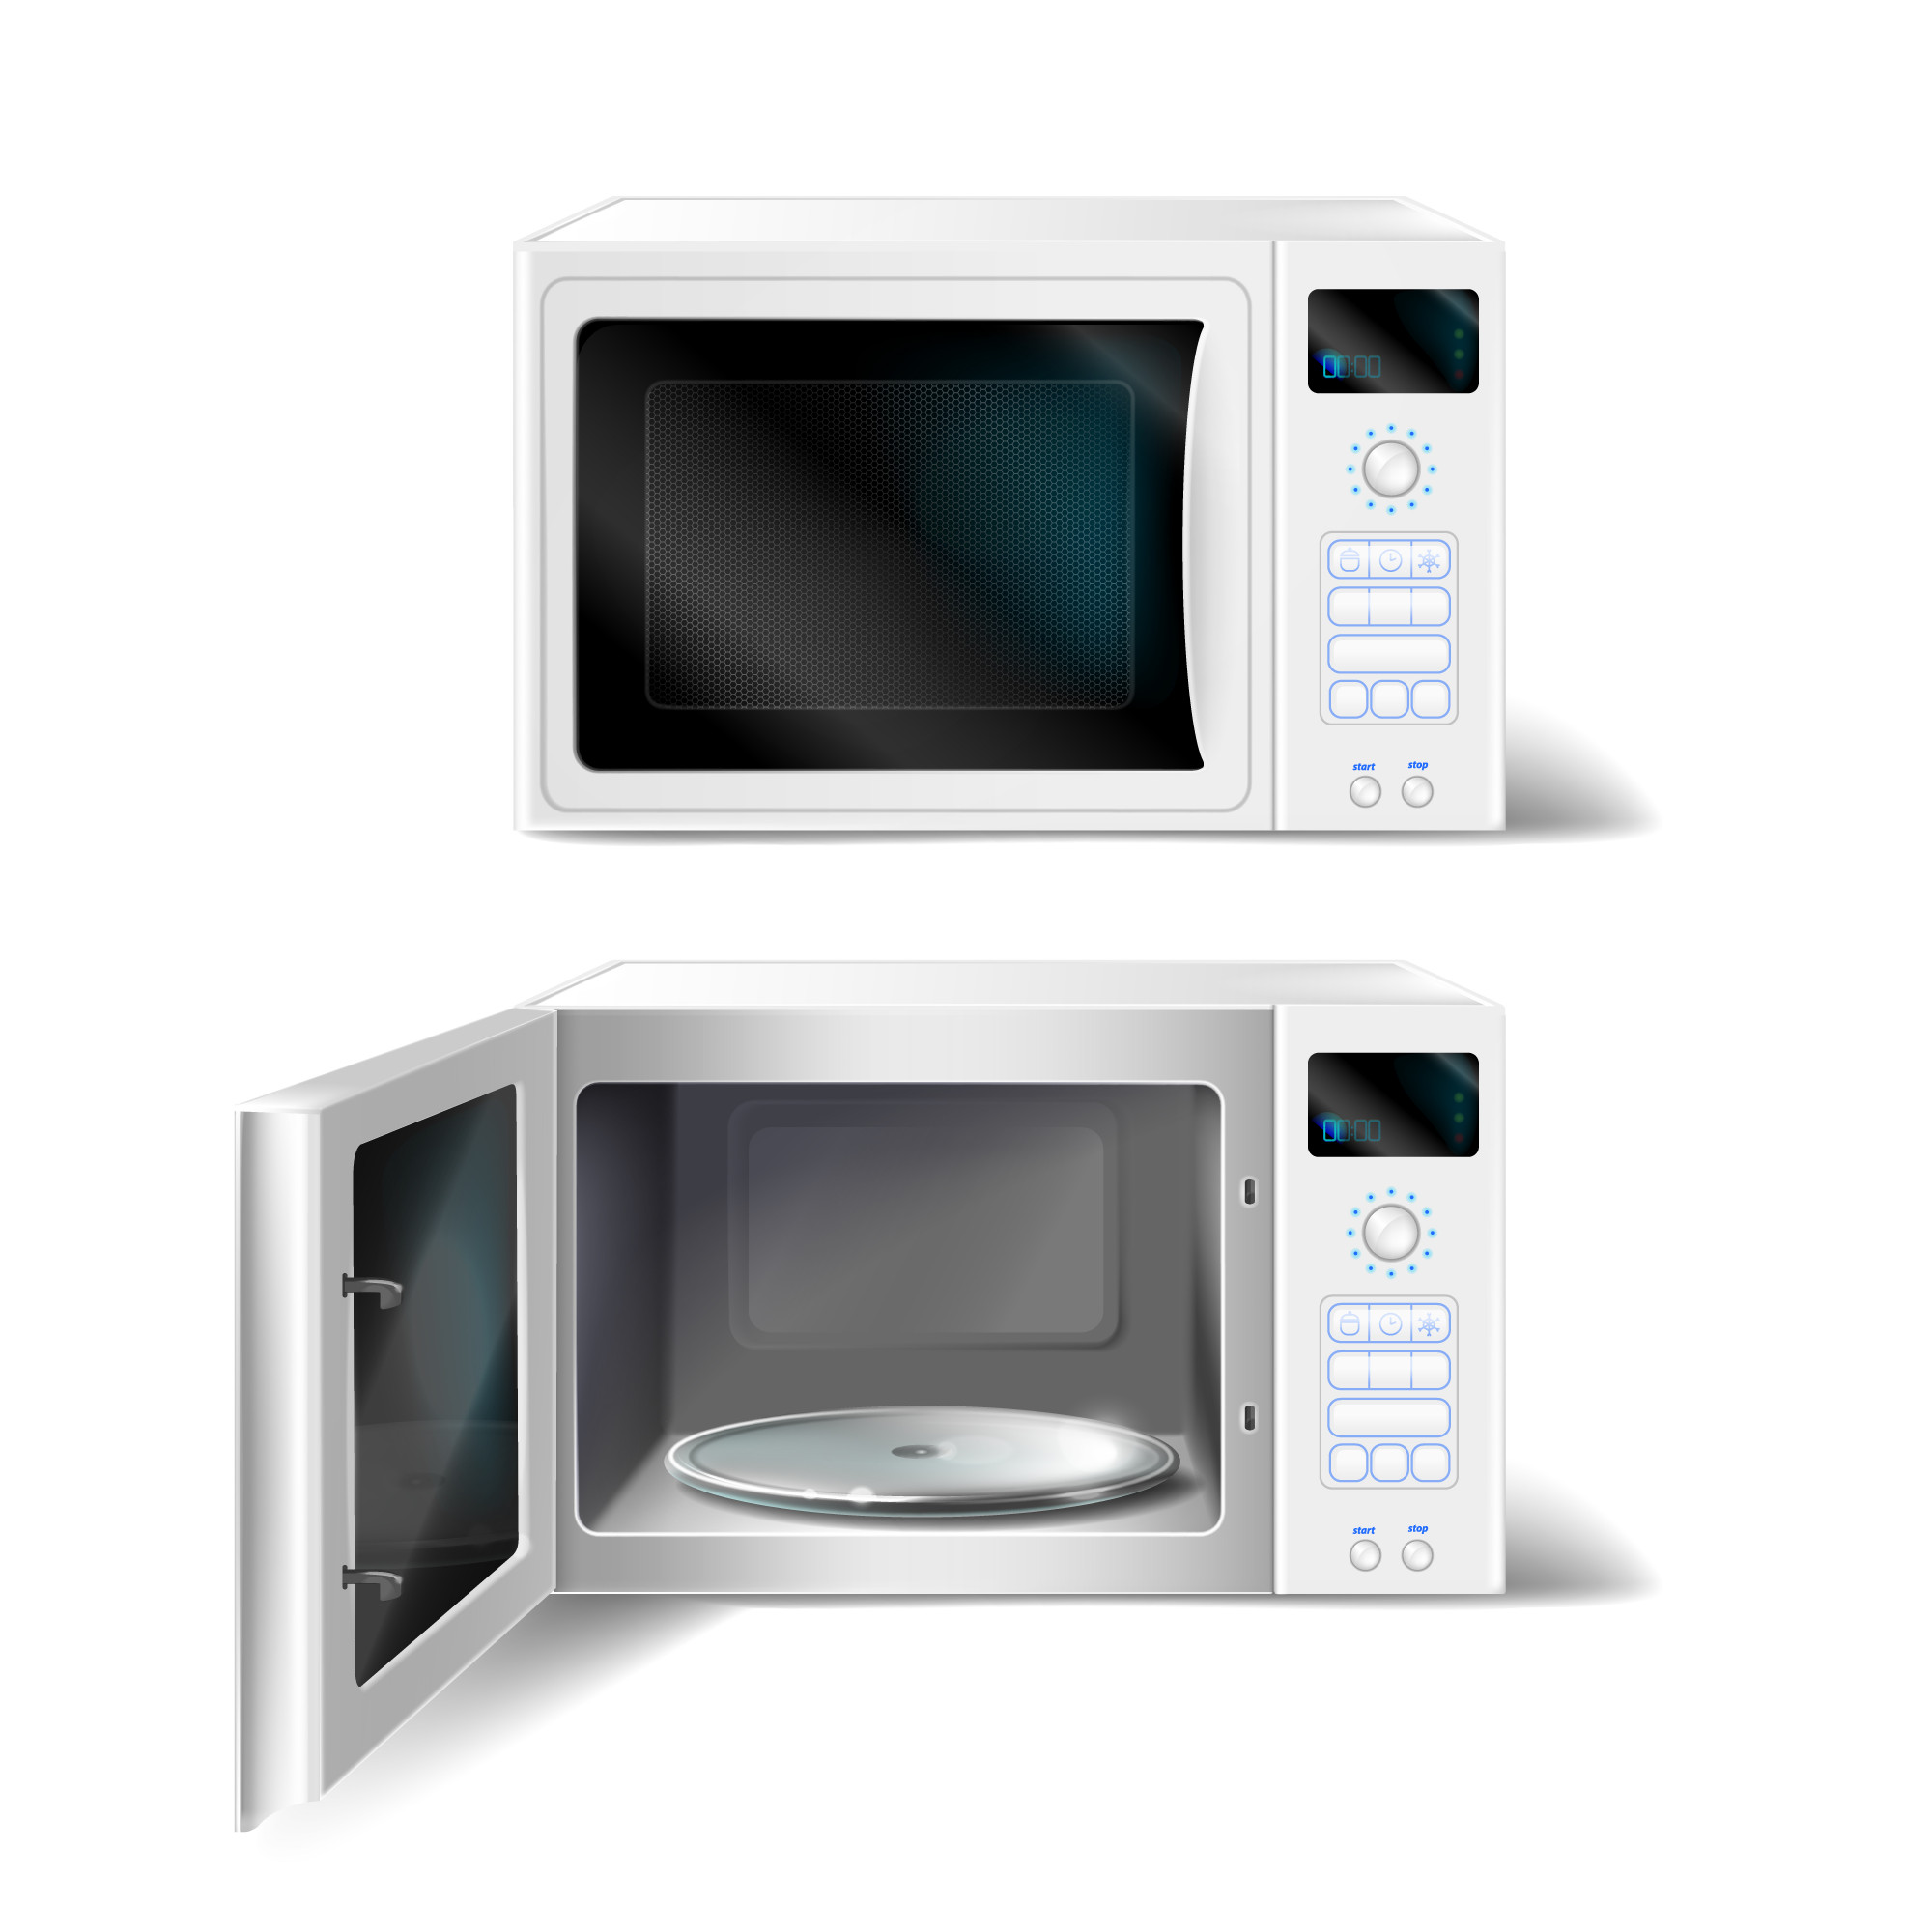 White microwave oven with empty glass plate inside, with open and close door